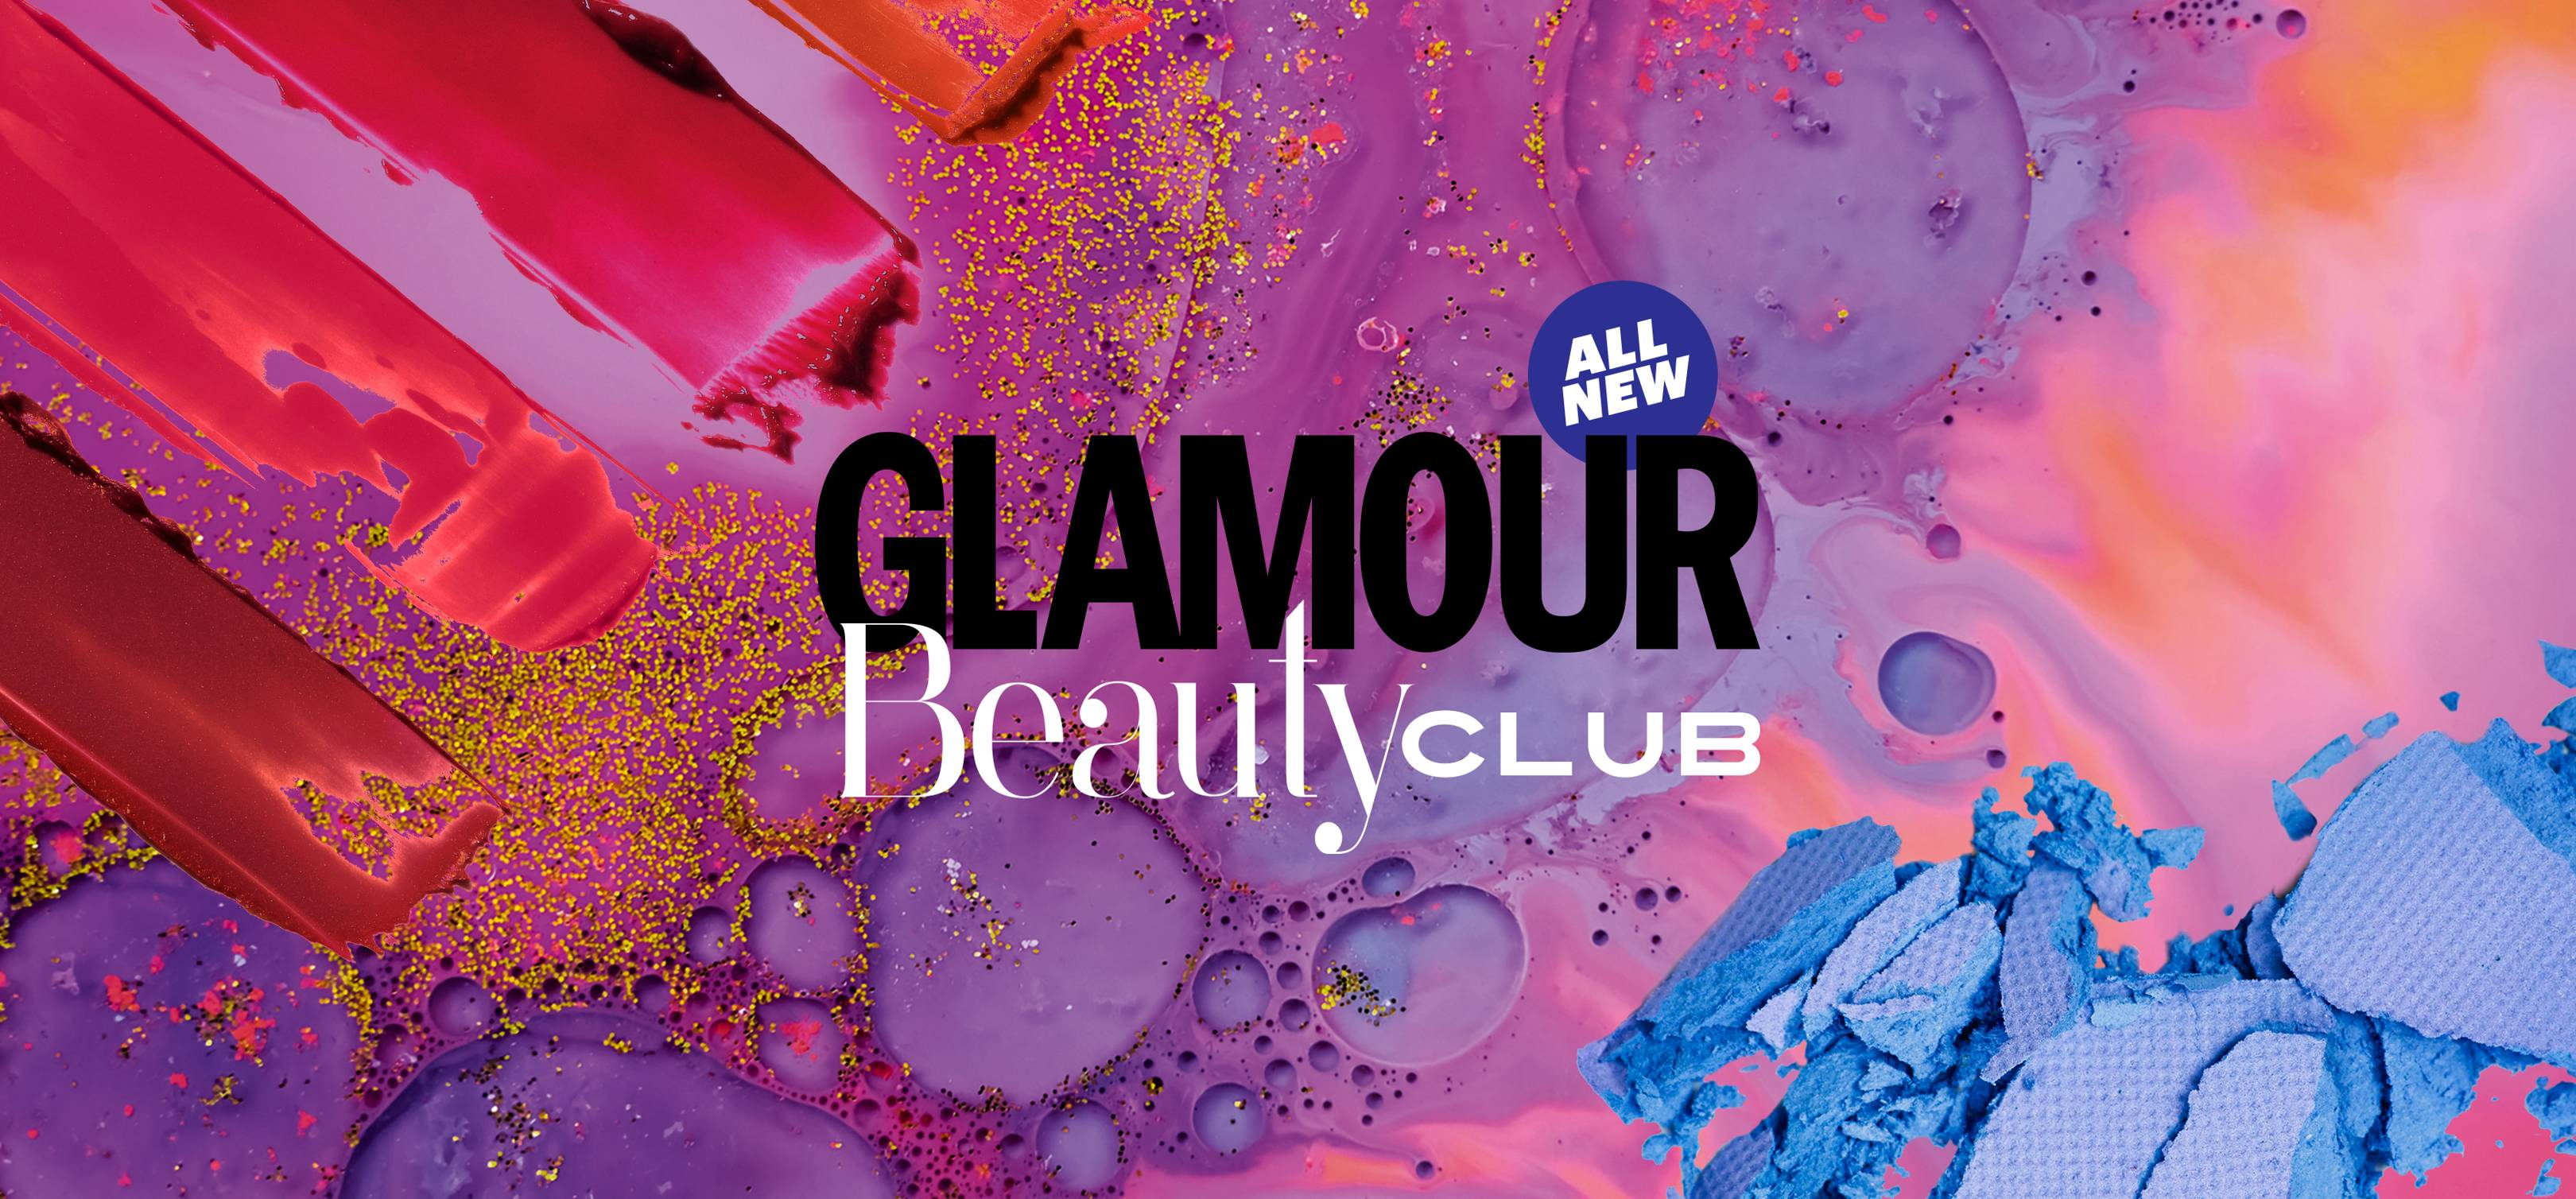 GLAMOUR Beauty Club: How To Sign Up And Receive Free Products